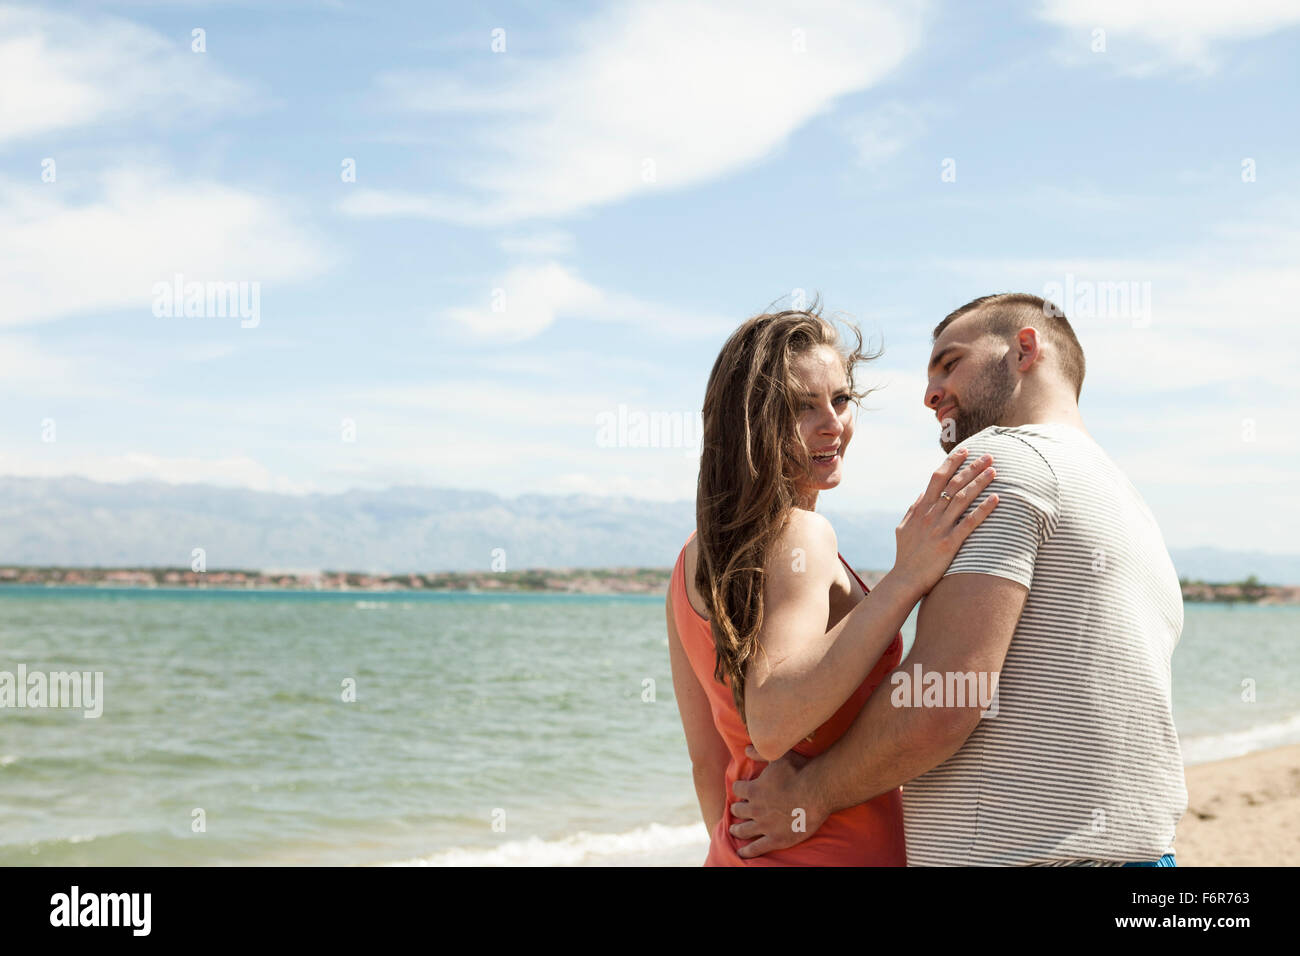 Young couple flirting on beach - Stock Image